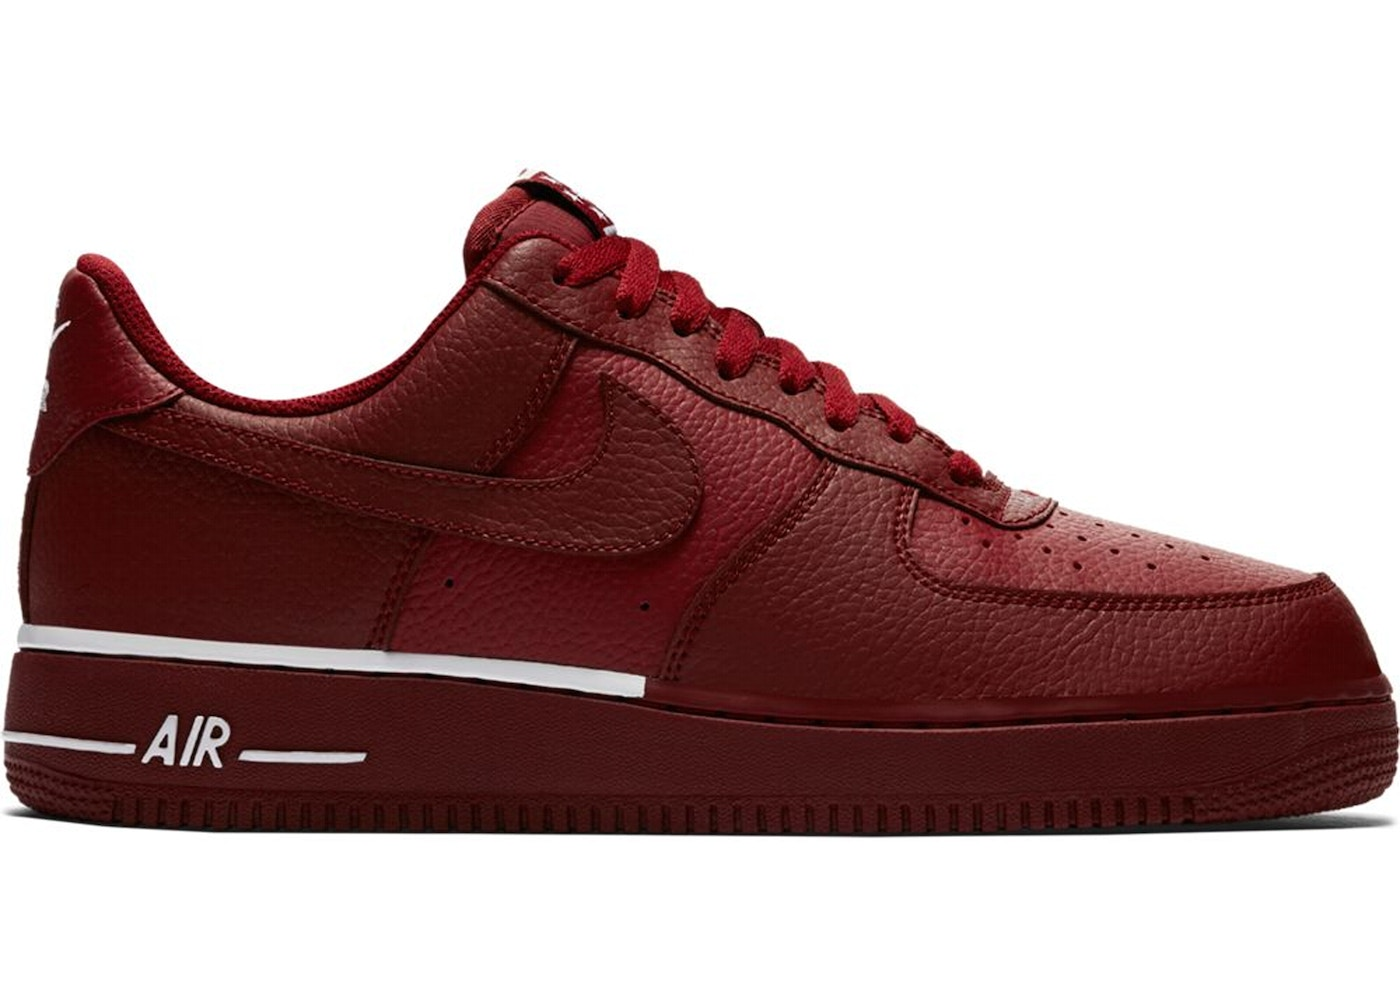 2d48777b Sell. or Ask. Size: 9.5. View All Bids. Air Force 1 Low Team Red